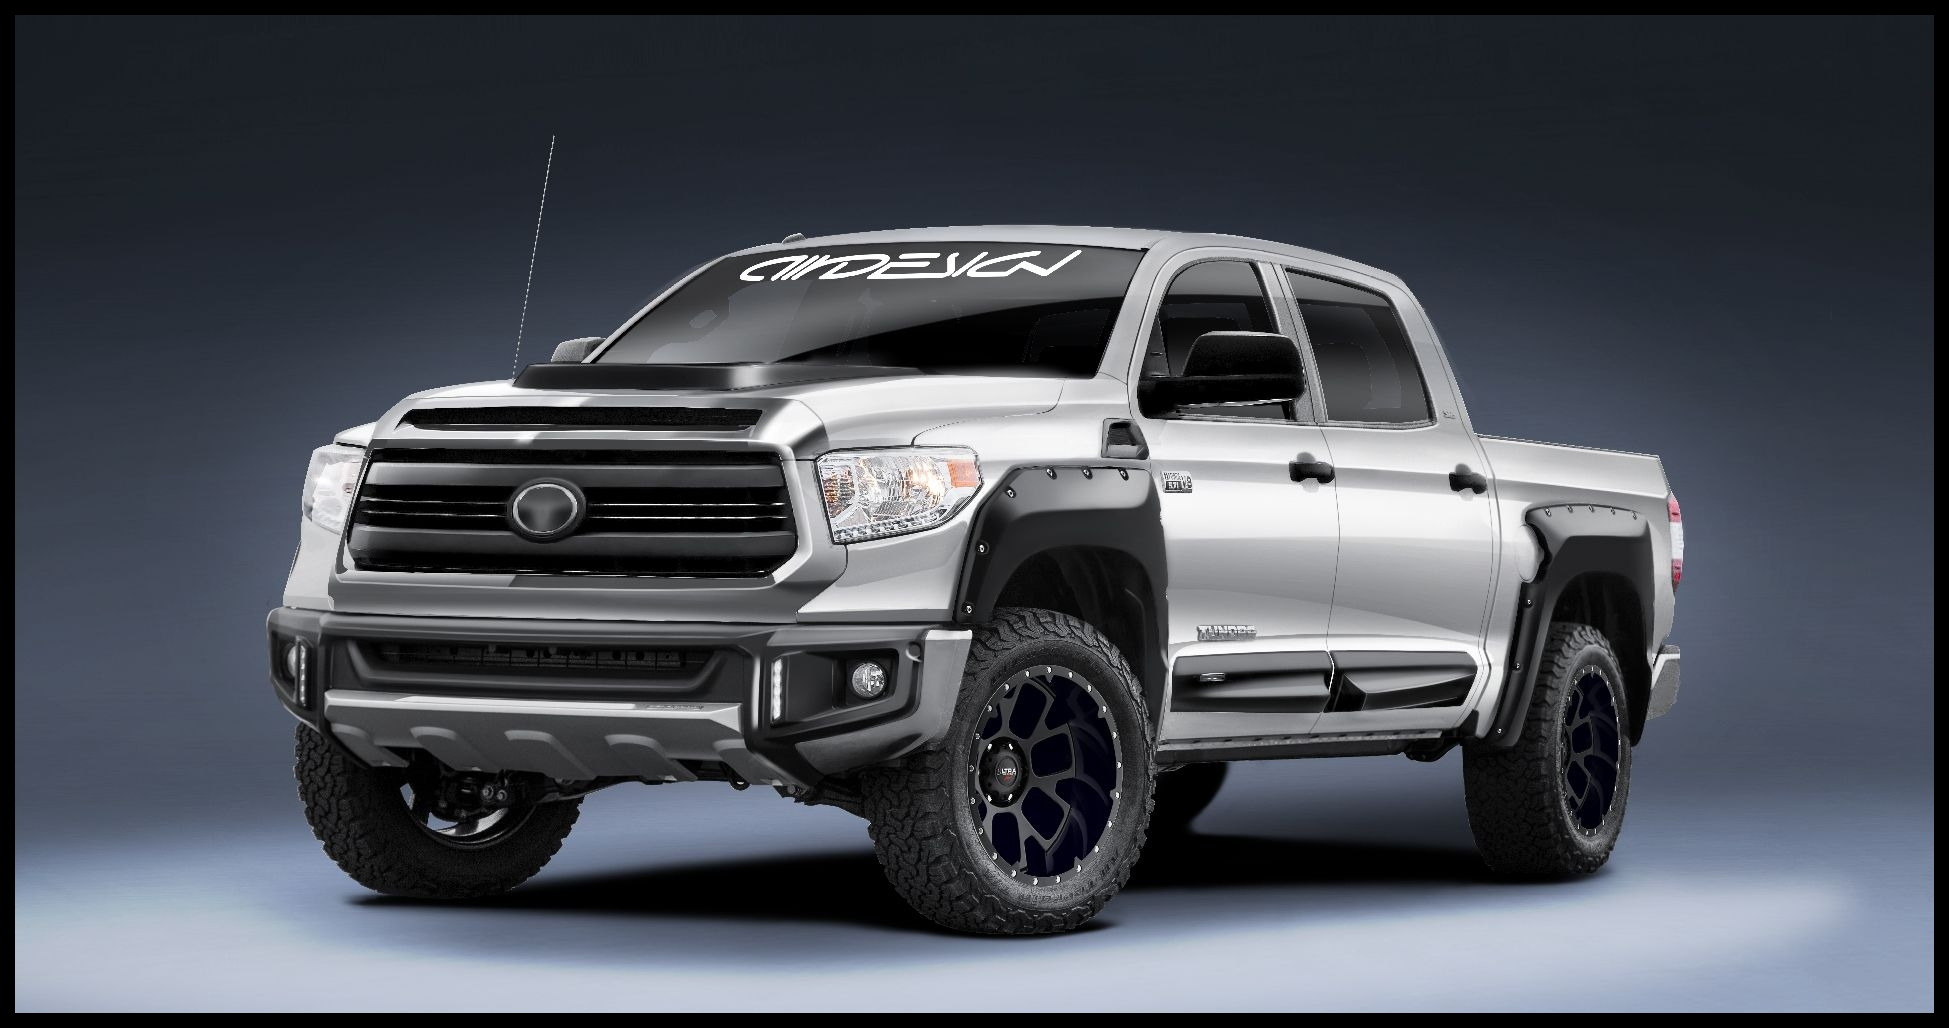 Toyota Tundra Air Design USA The Ultimate Accessories Collection for f Road and Street